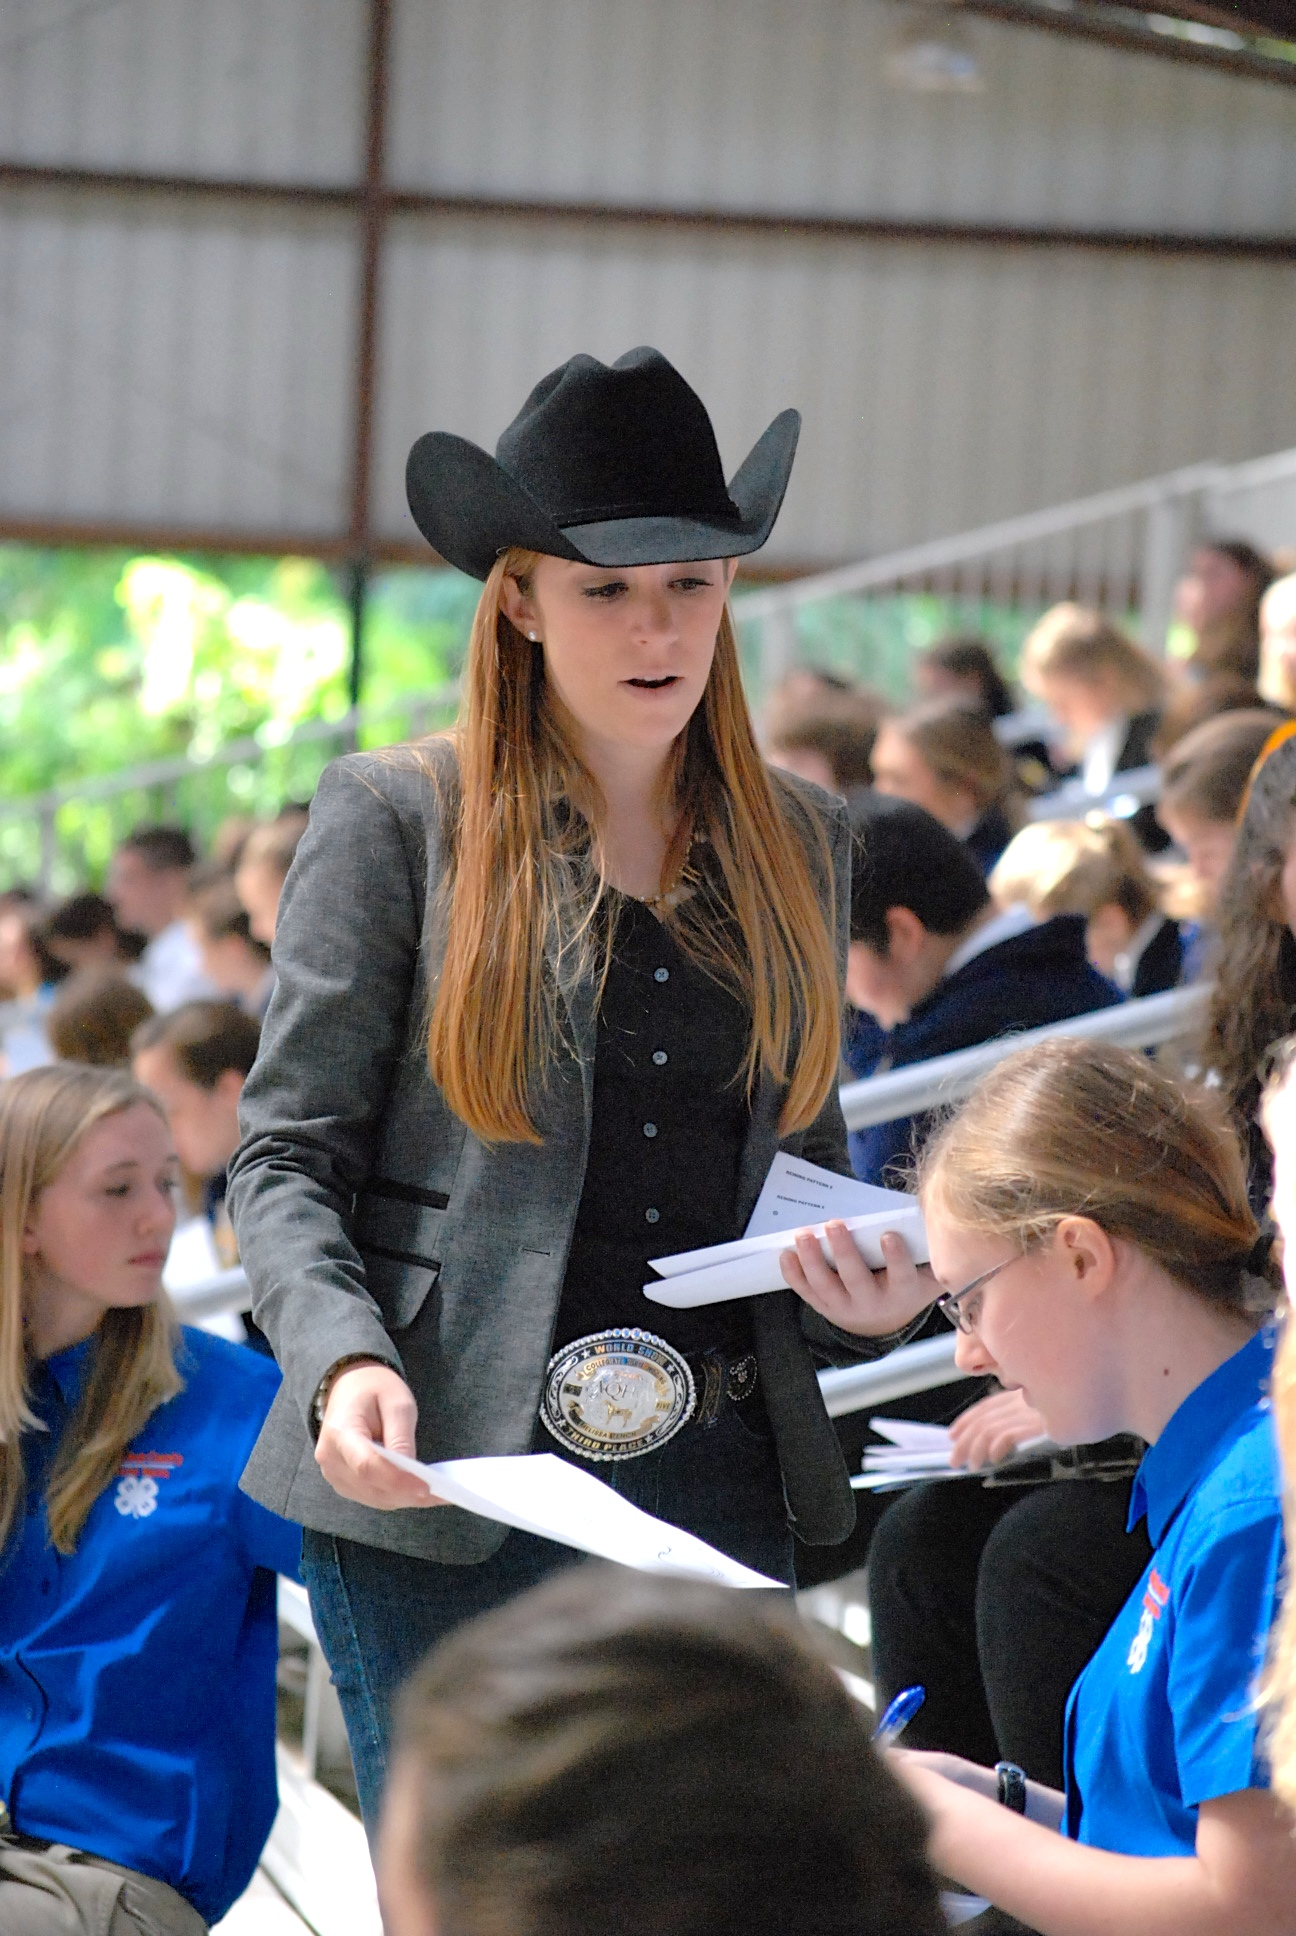 Melissa Tench - Joined 4-H at age 13